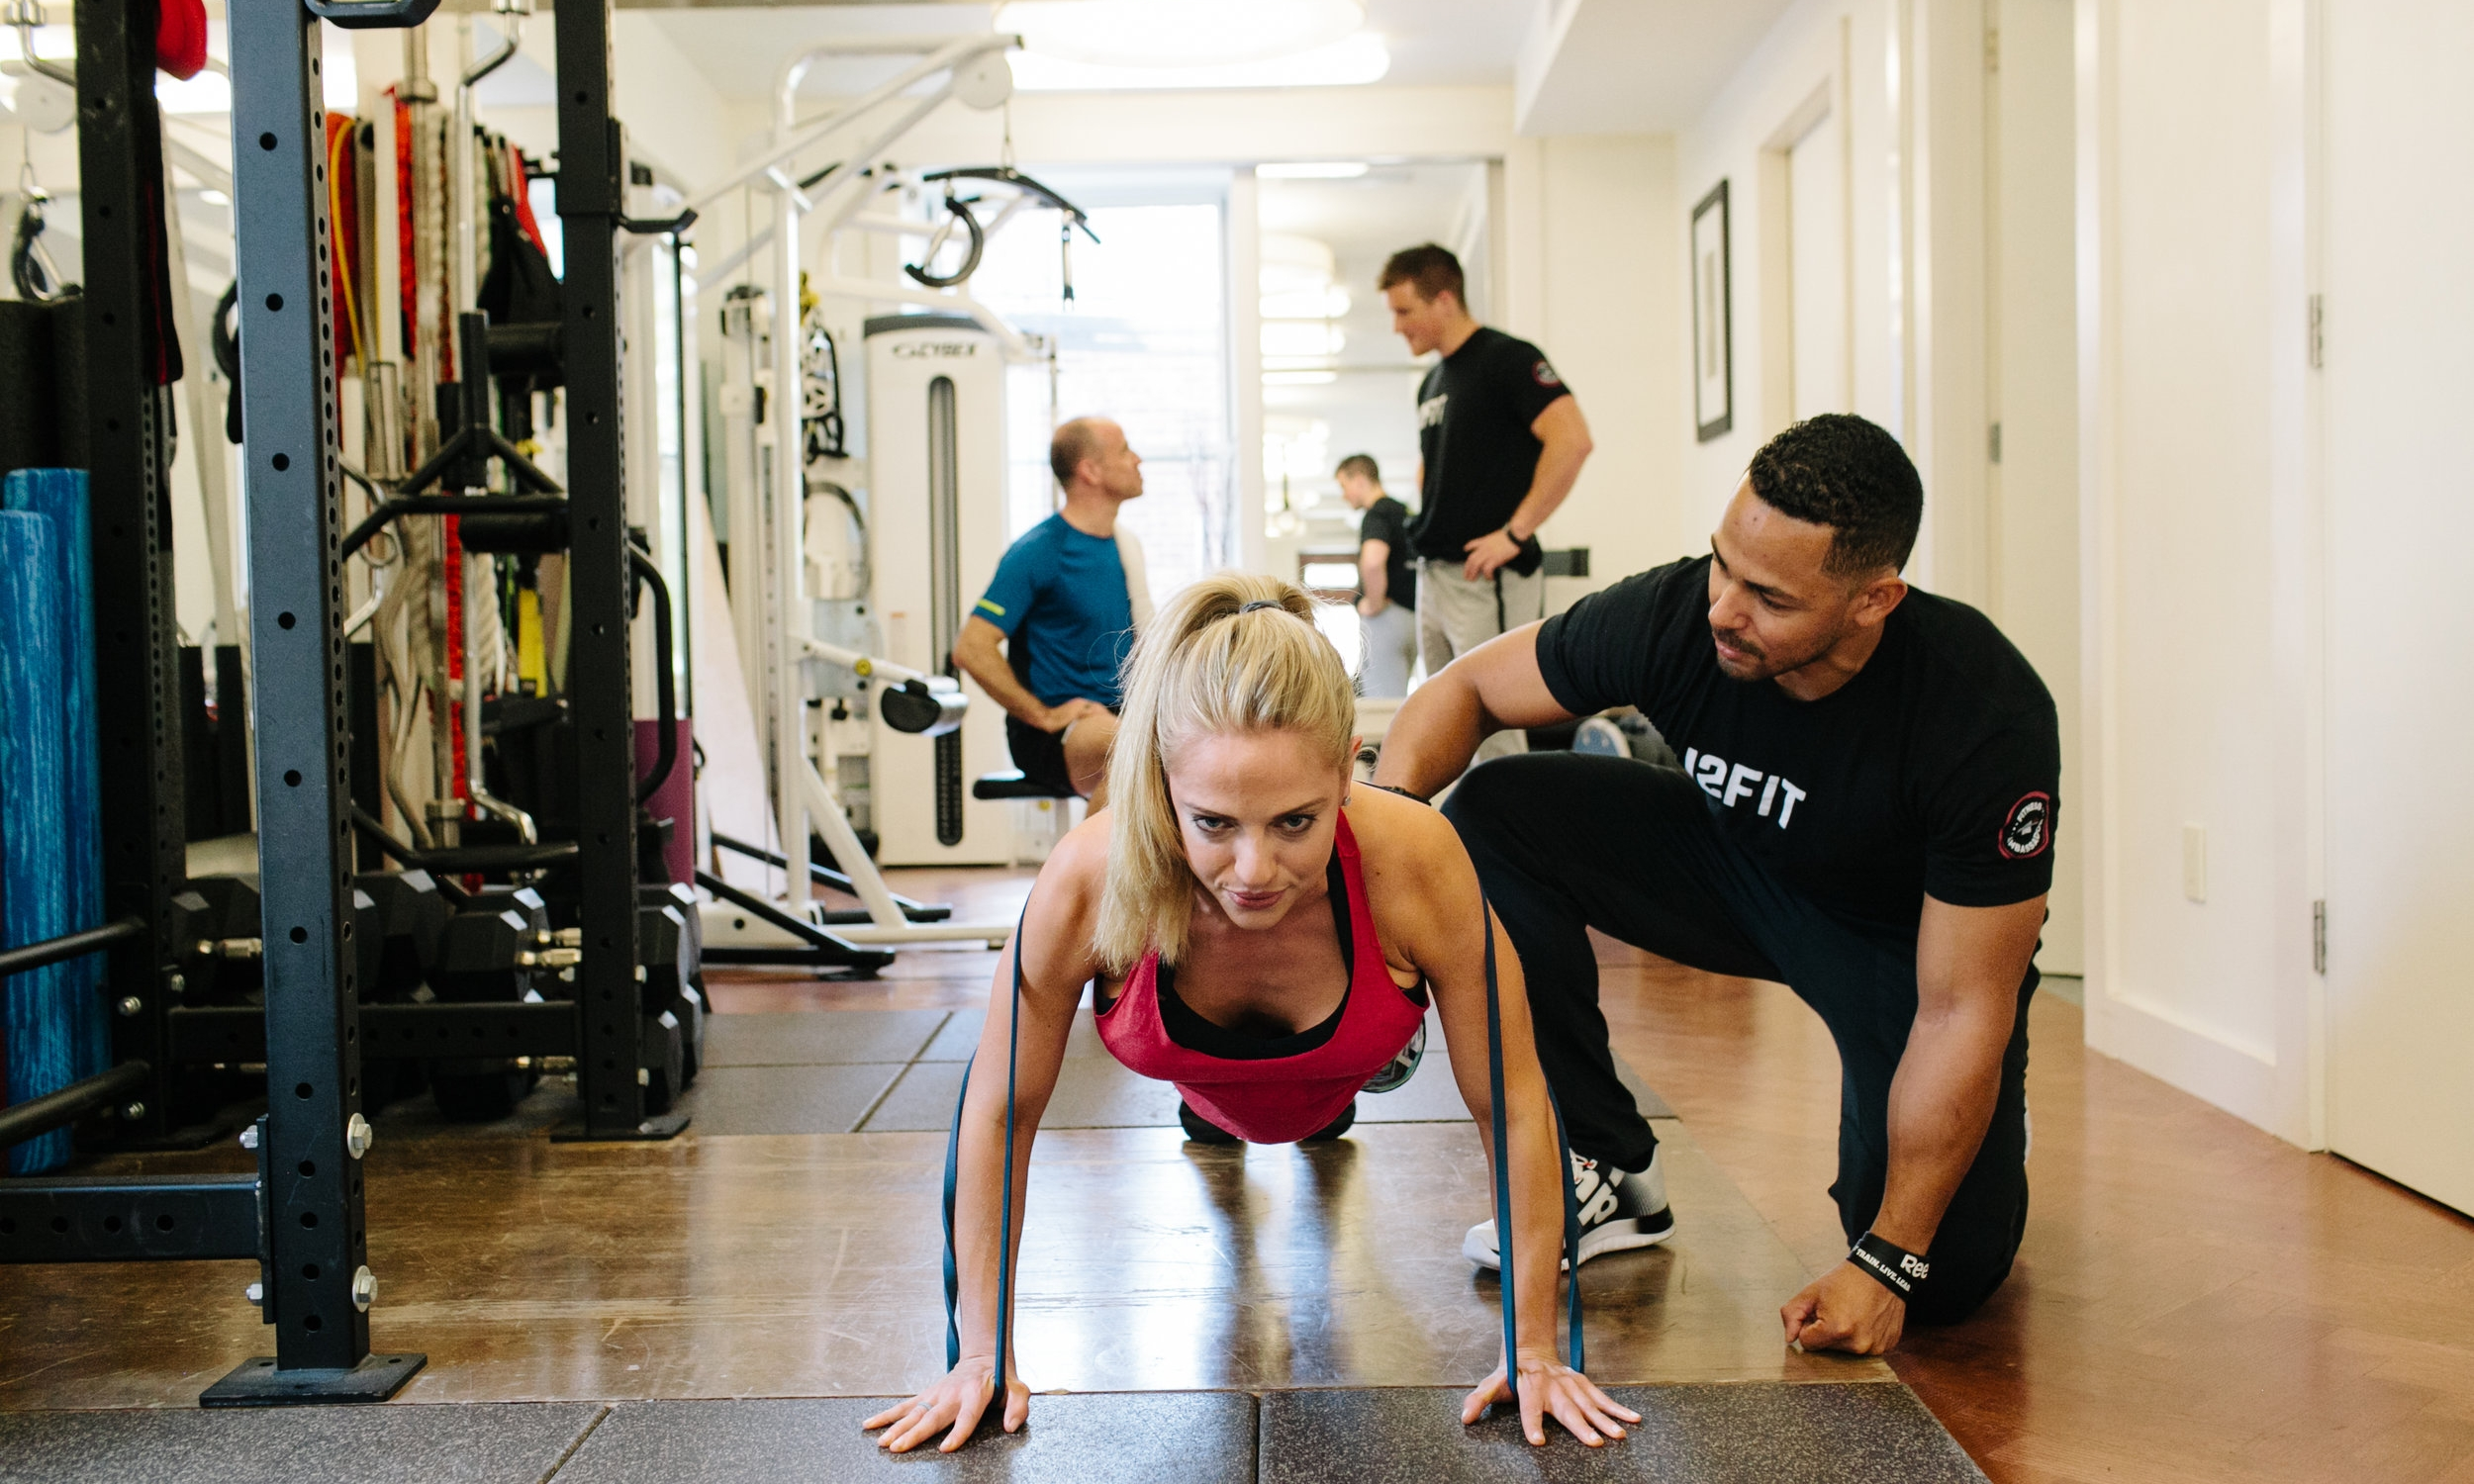 j2fit personal training nyc.jpg